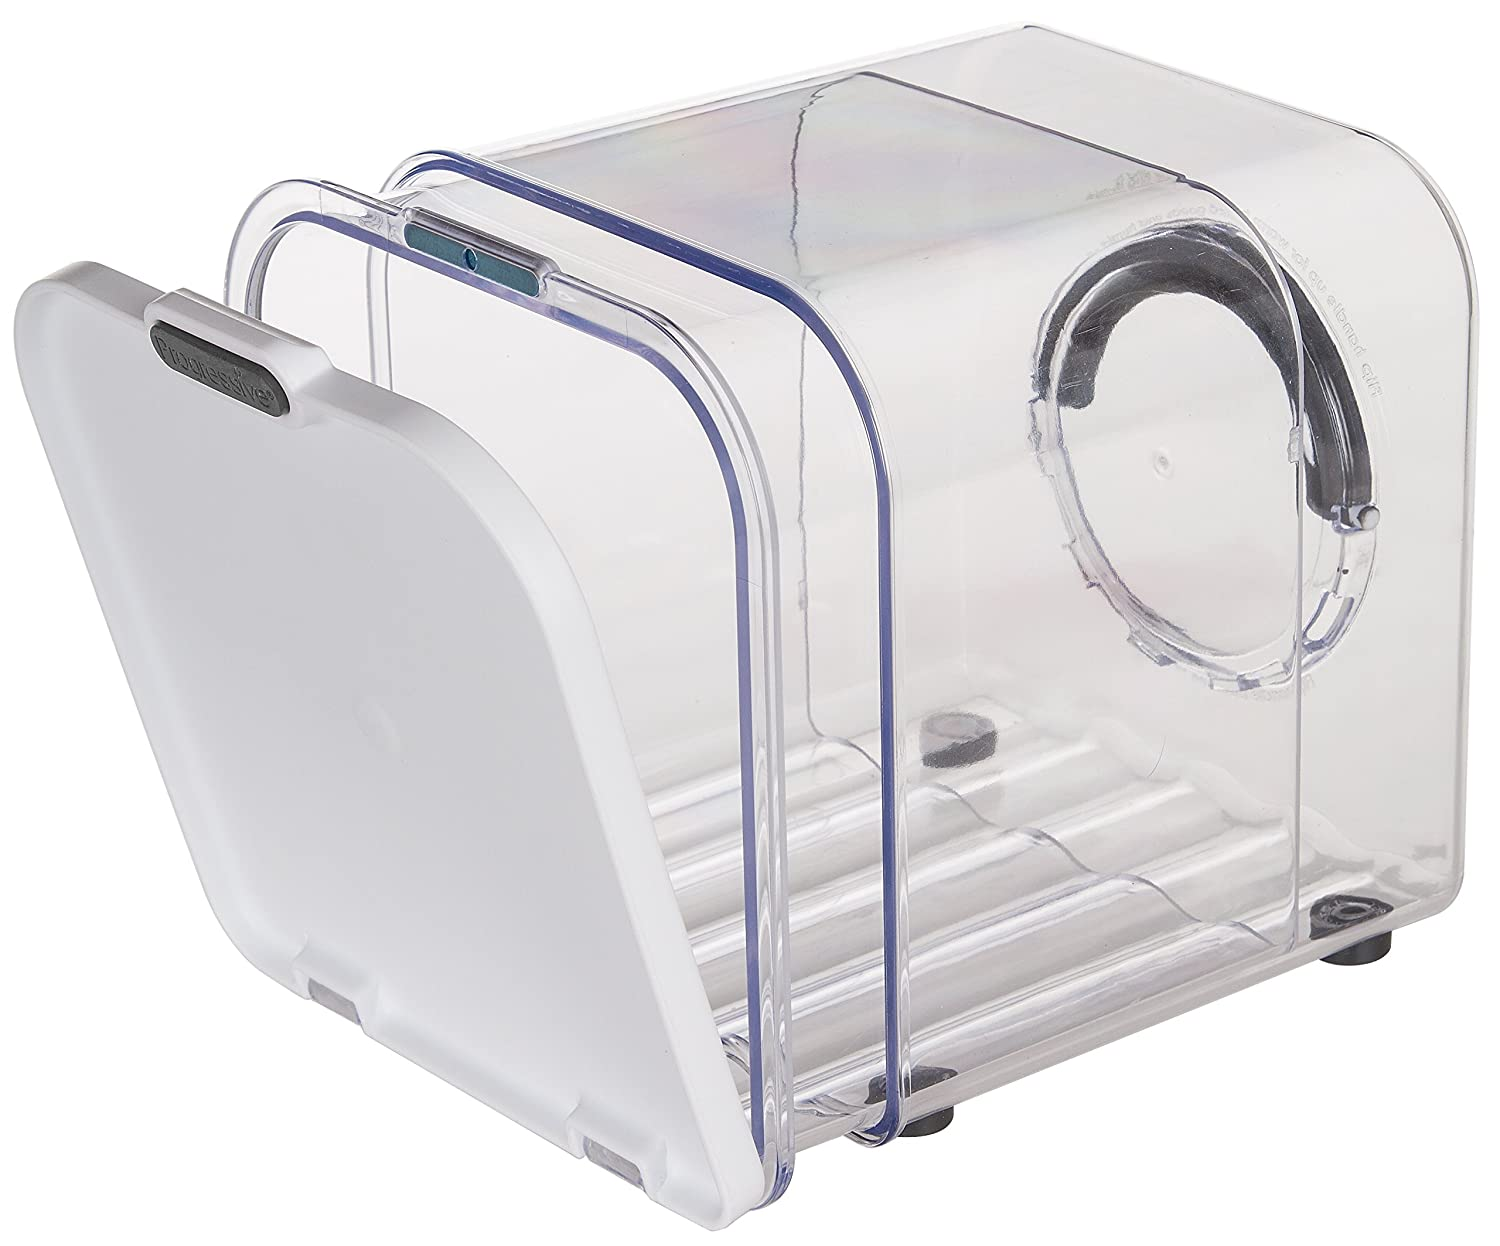 Prepworks by Progressive Bread ProKeeper, PKS-800 Adjustable Air Vented Bread Storage Container, Expandable Bread Holder